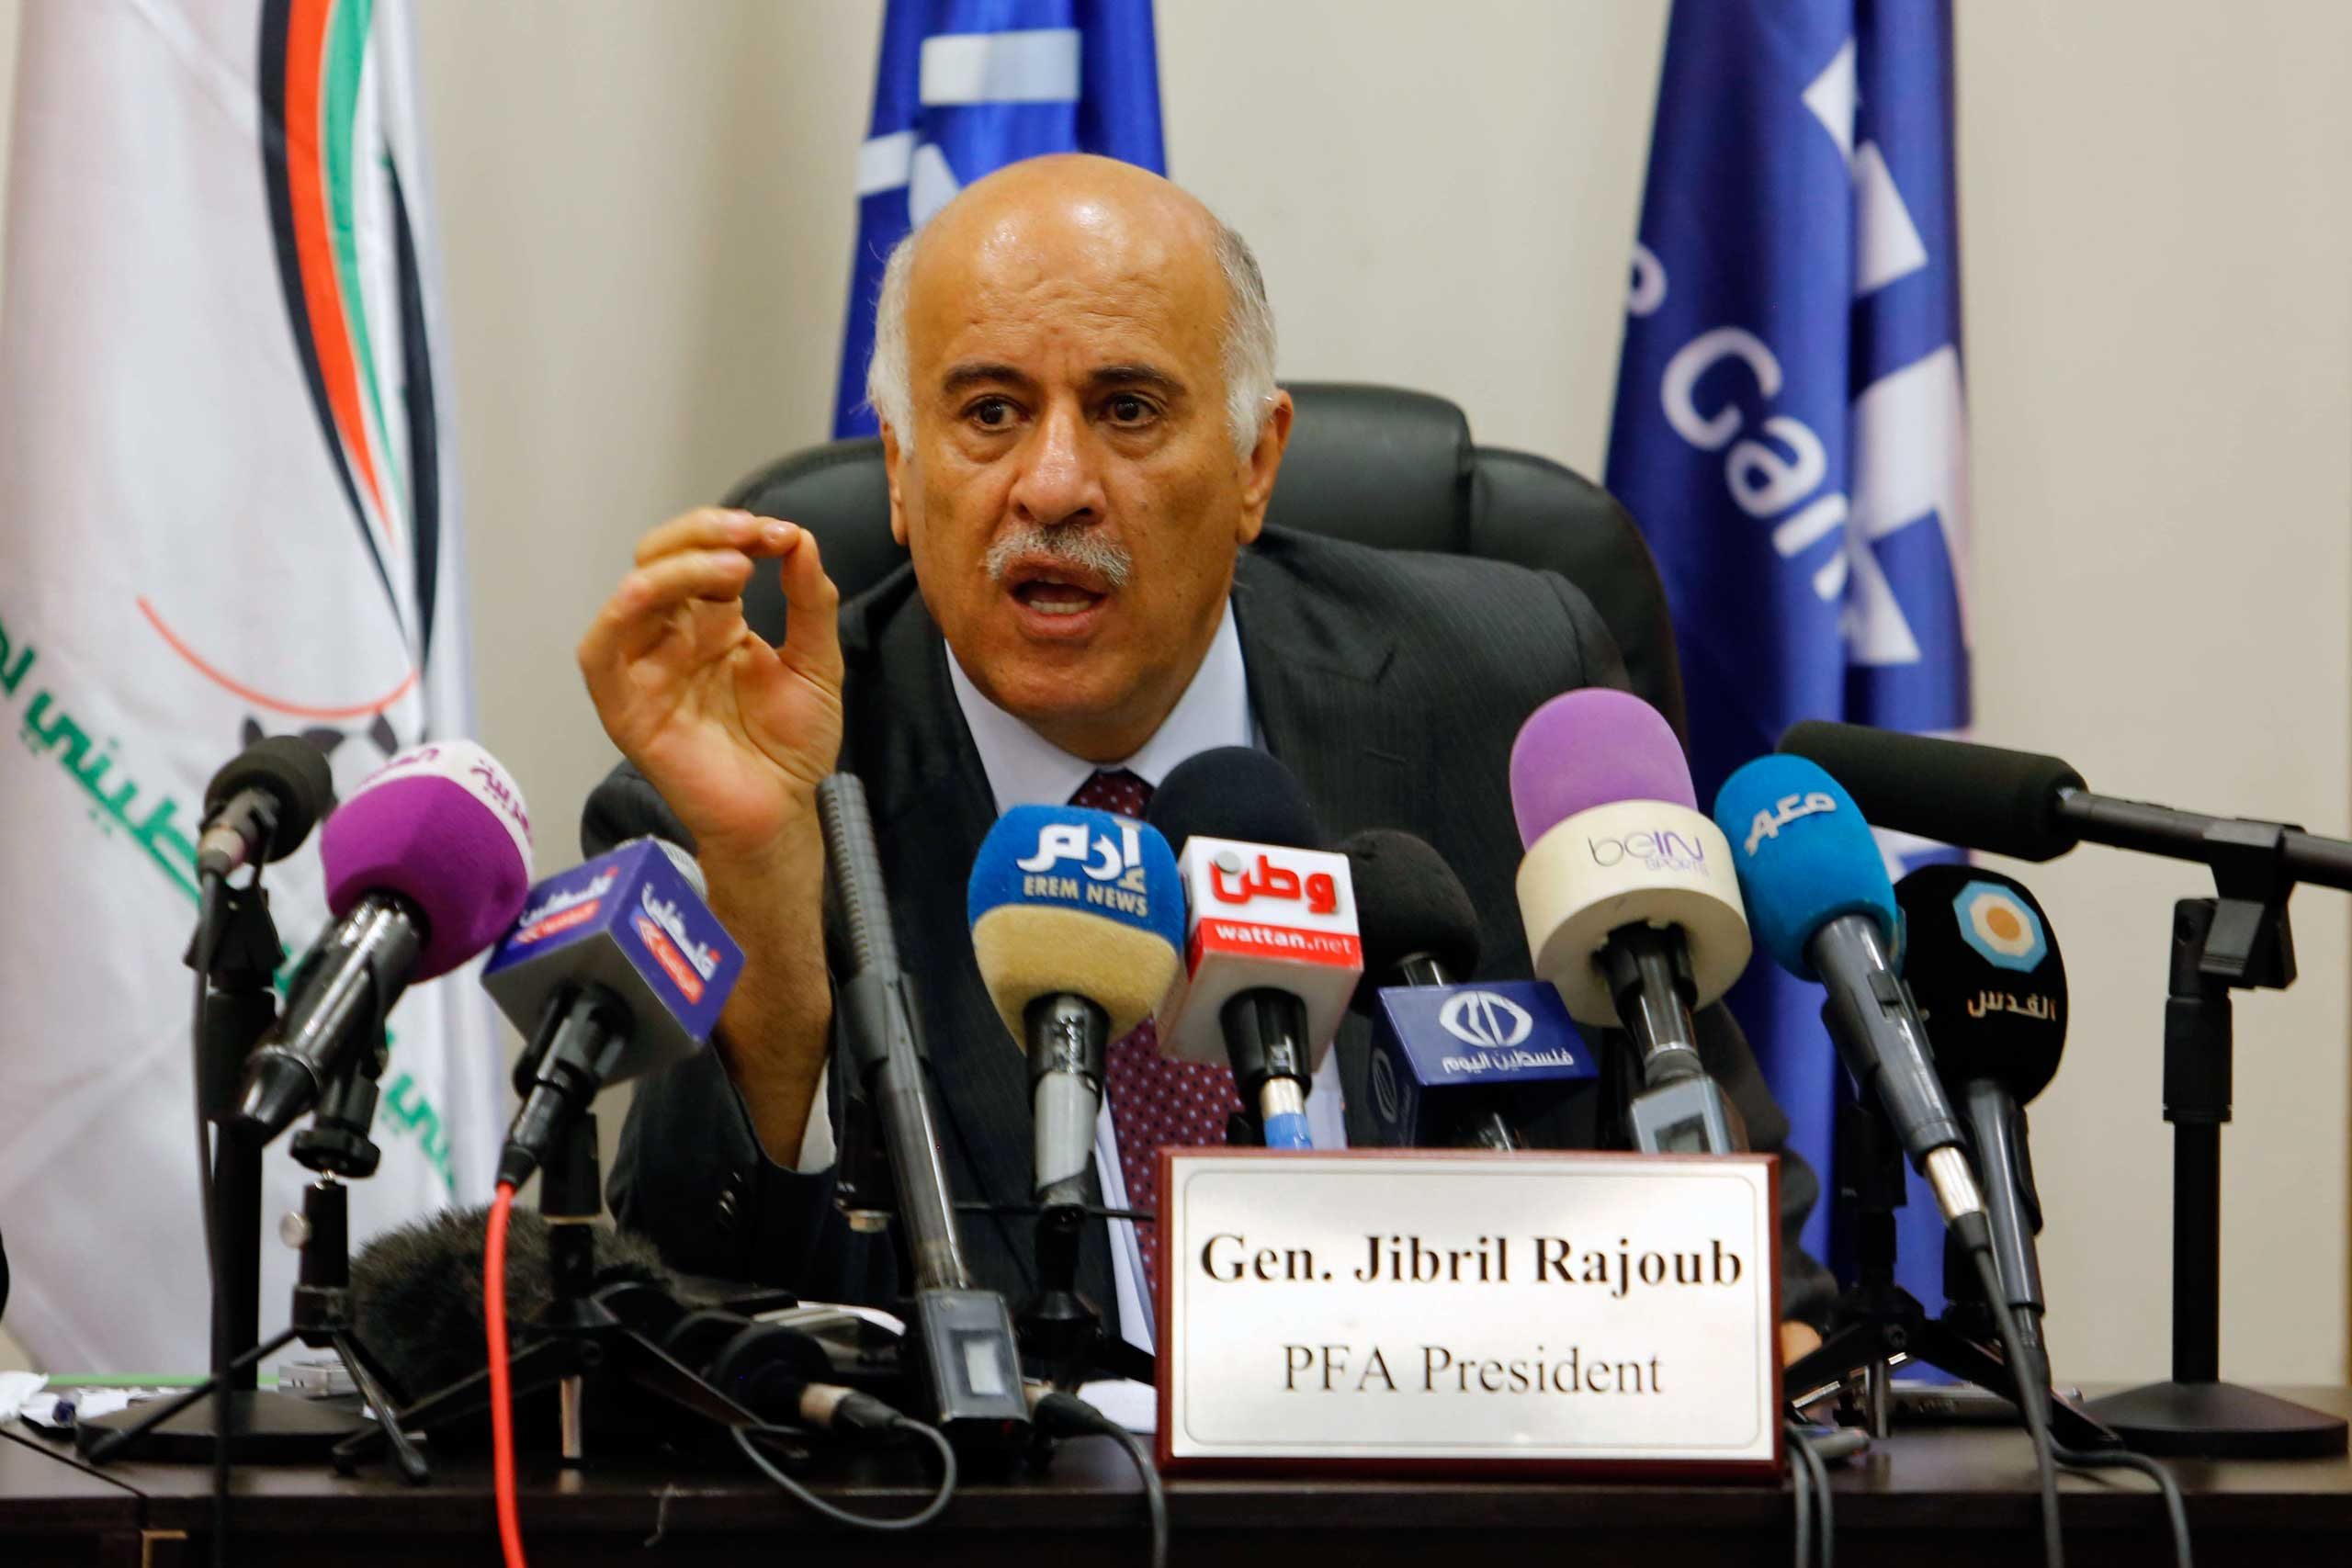 Head of Palestinian football Association Jibril Rajoub speaks during a press conference in Ramallah in the West Bank on May 25, 2015.